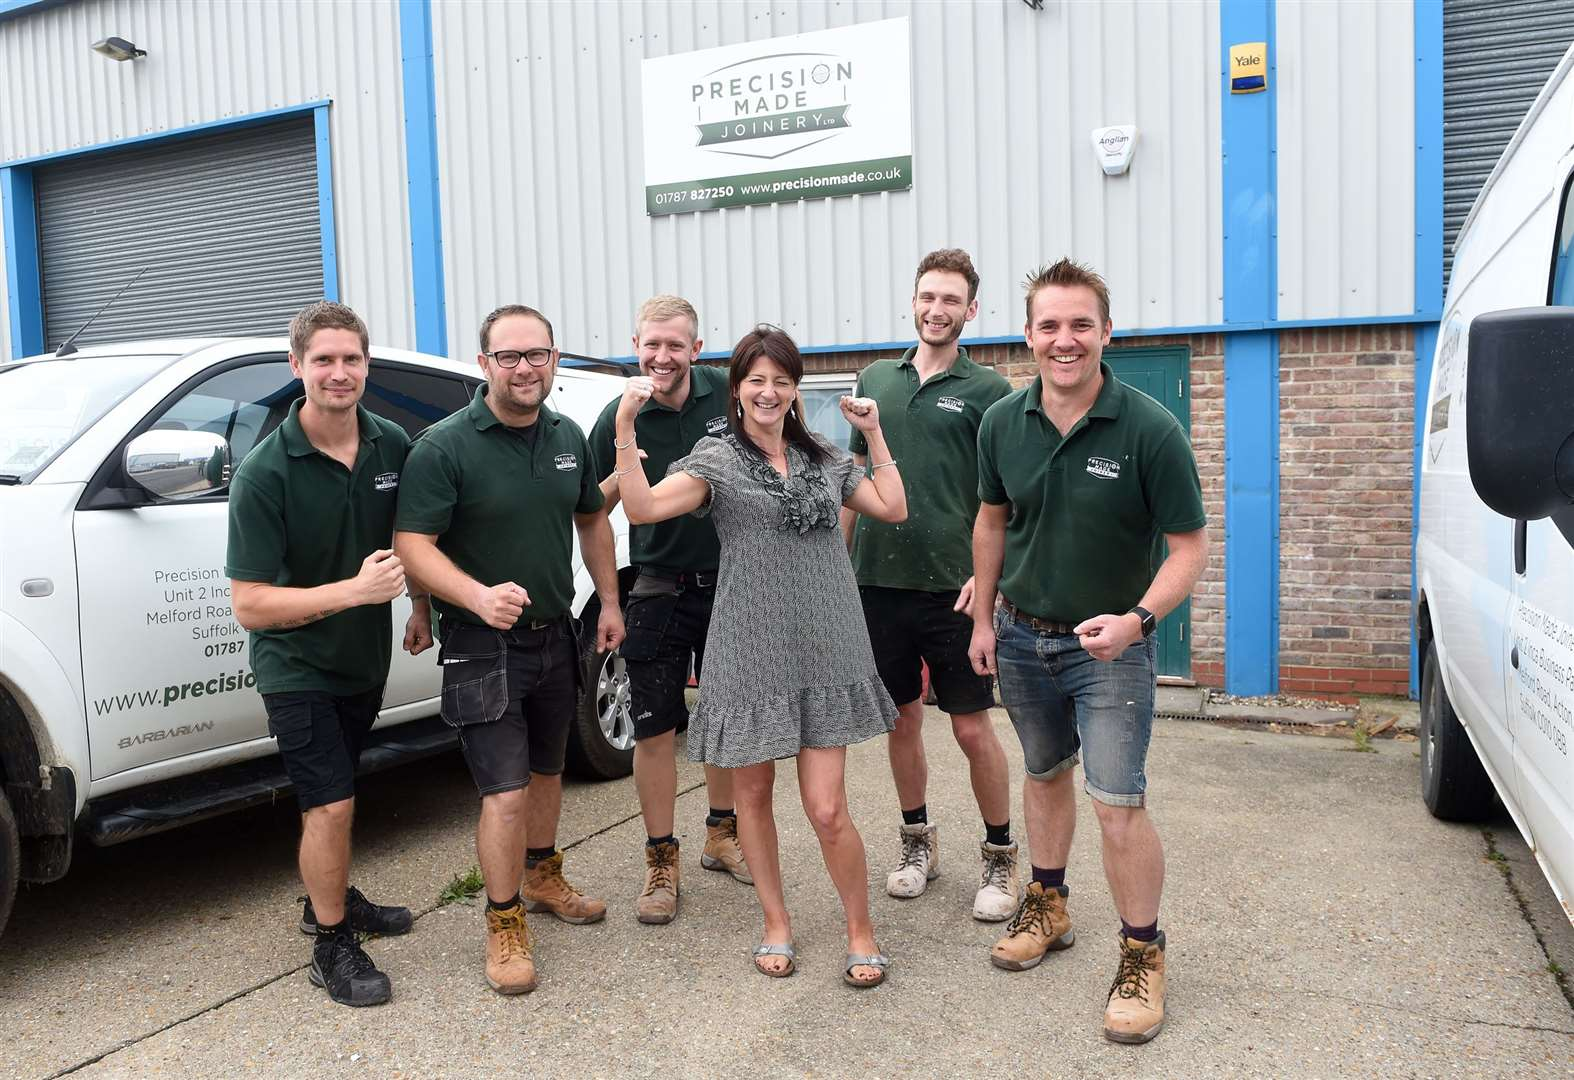 Acton business raring to go on mud run to raise £1,500 for West Suffolk Hospital